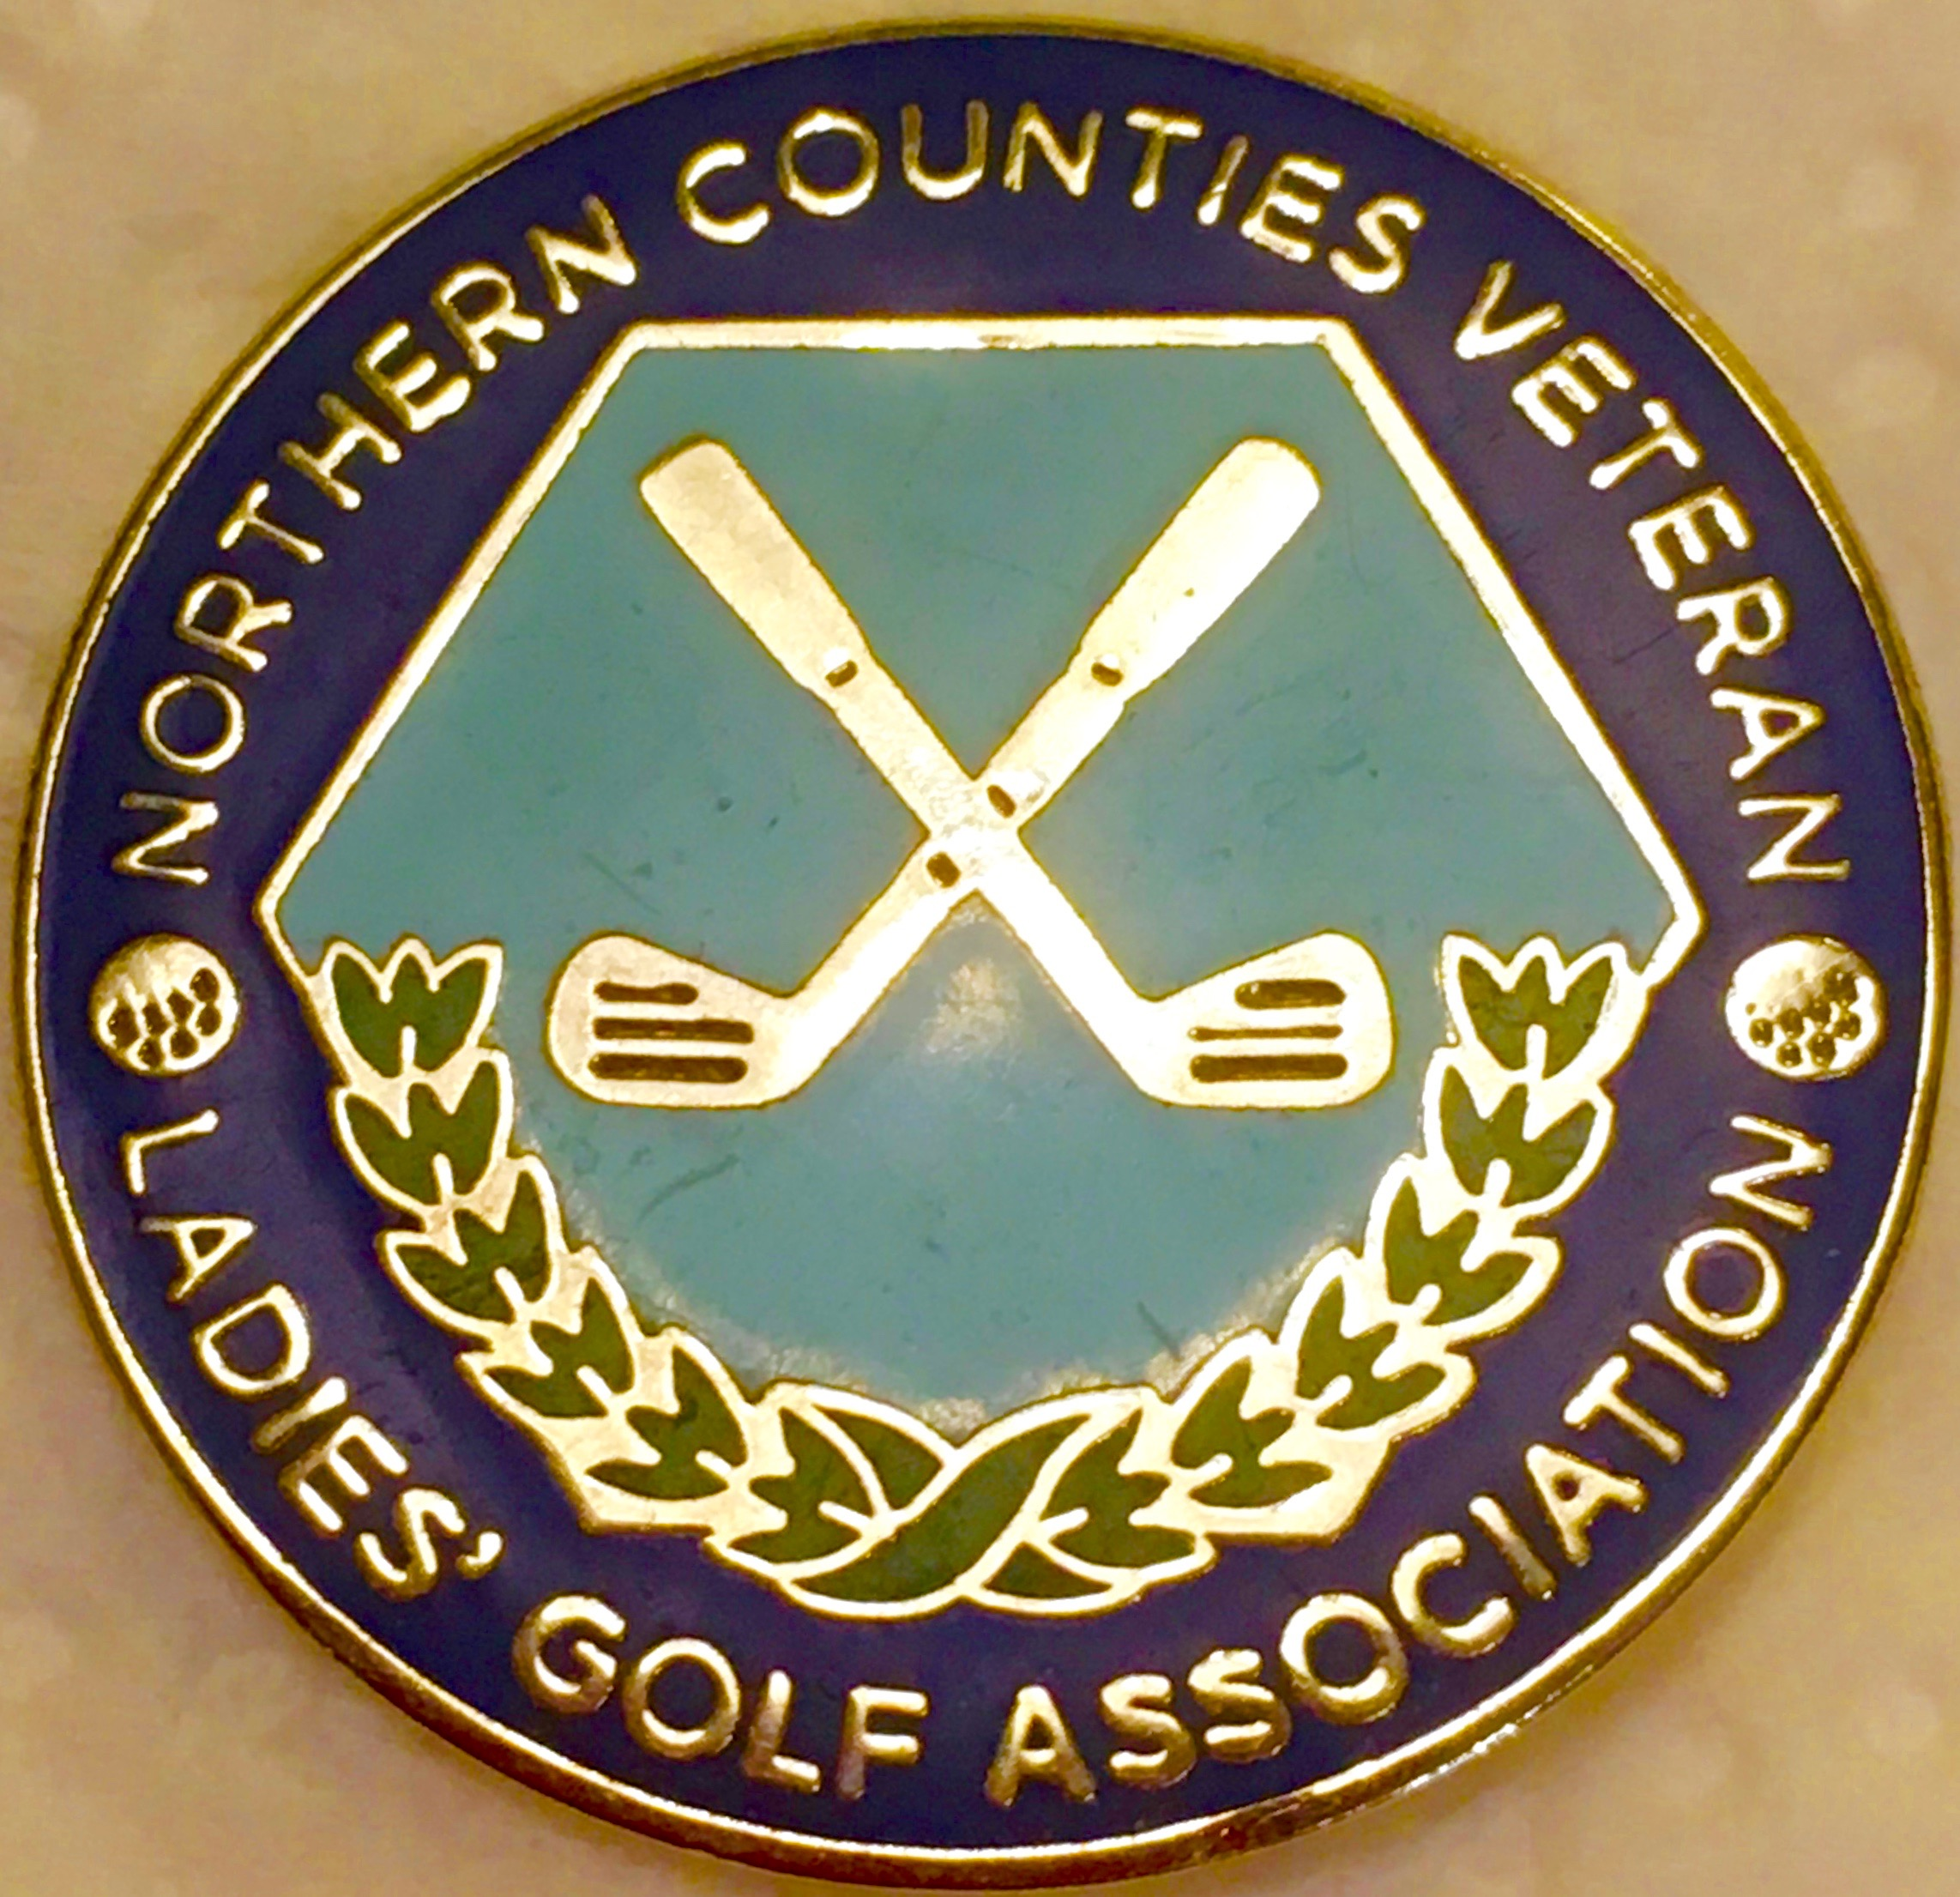 North supporter badge